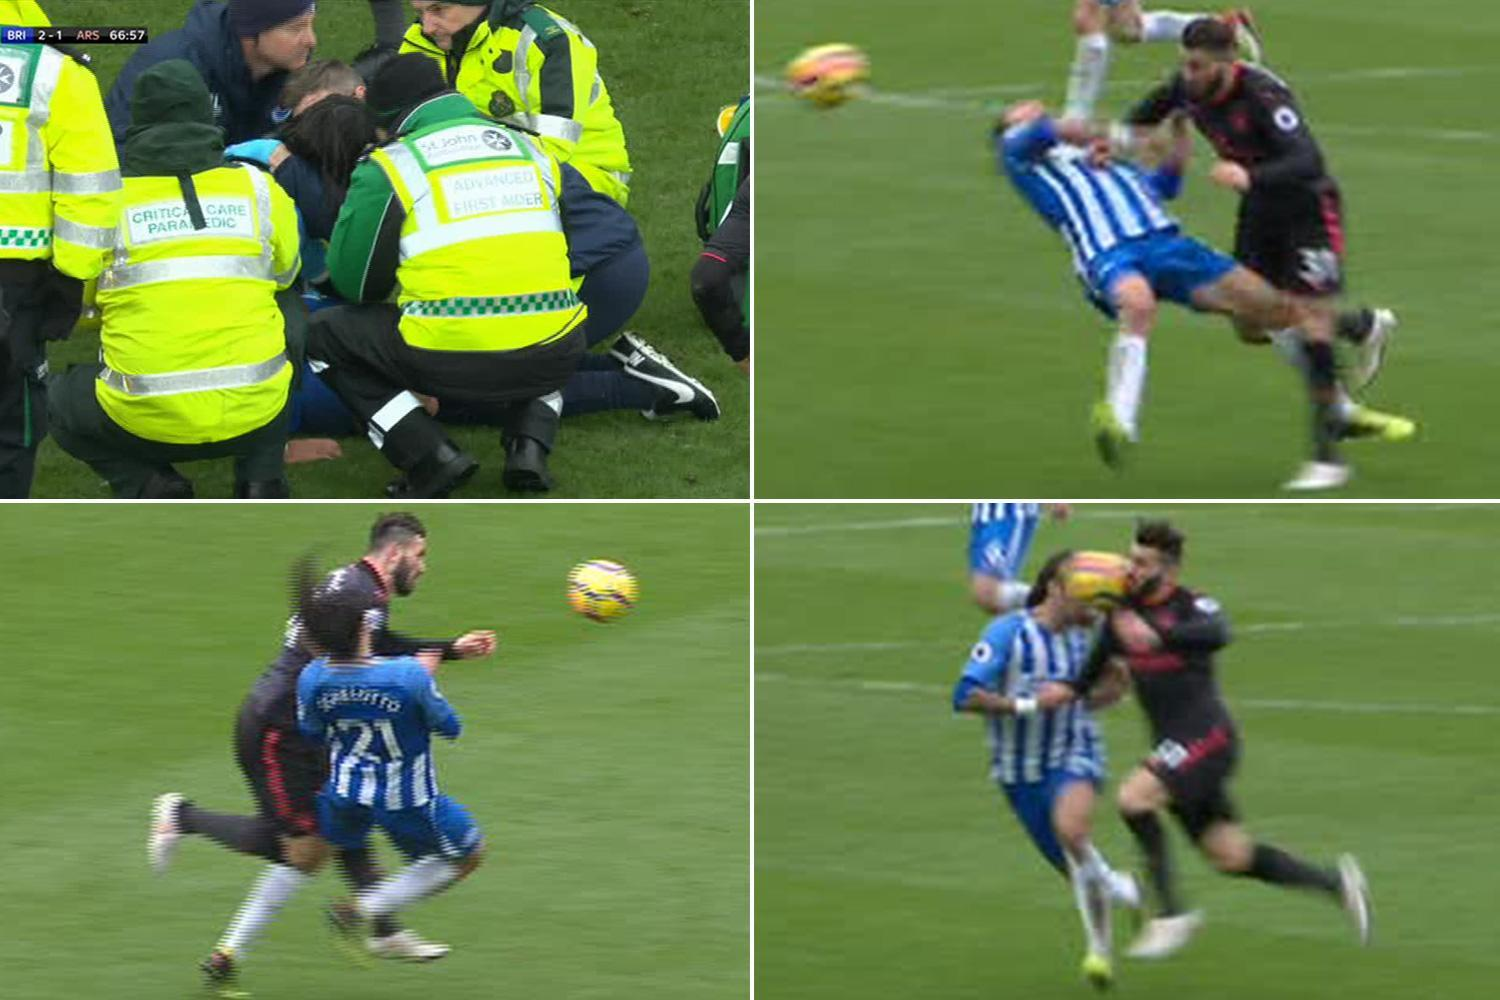 Arsenal star Sead Kolasinac smashes Brighton's Ezequiel Schelotto with brutal body blow but somehow avoids red card